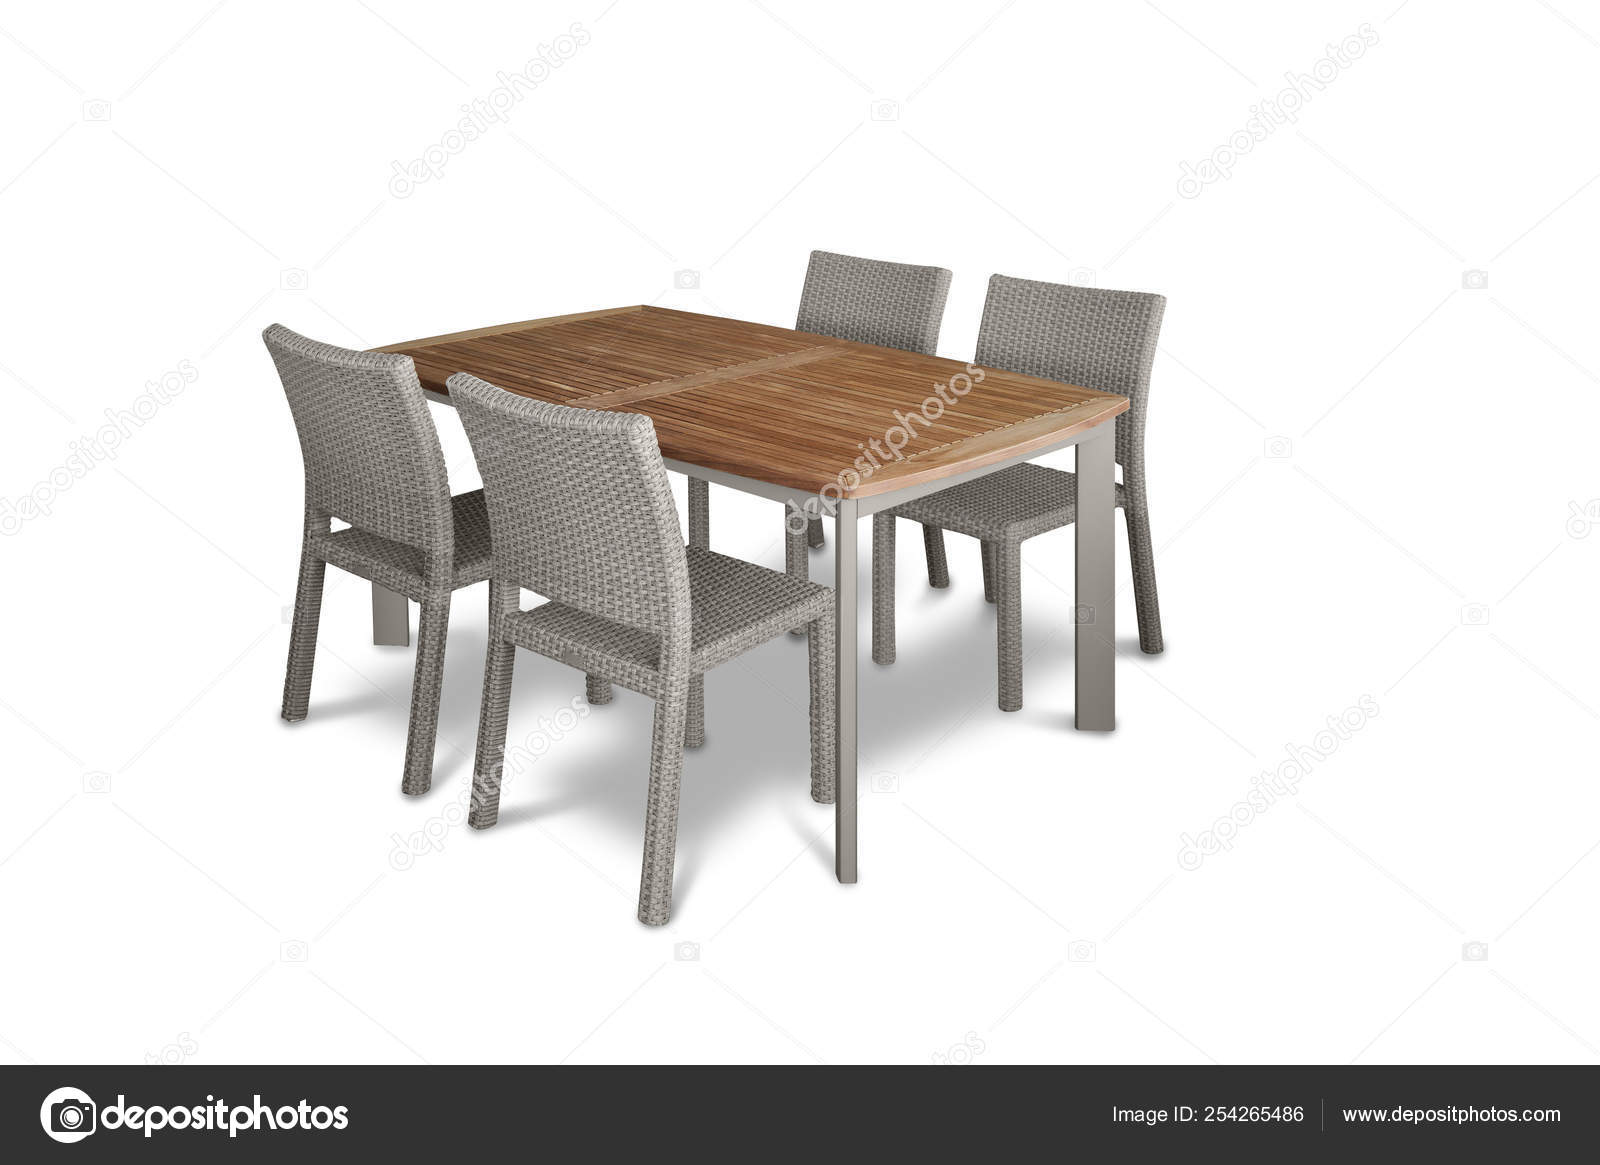 Enjoyable Garden Dining Table Chairs White Background Stock Photo Onthecornerstone Fun Painted Chair Ideas Images Onthecornerstoneorg